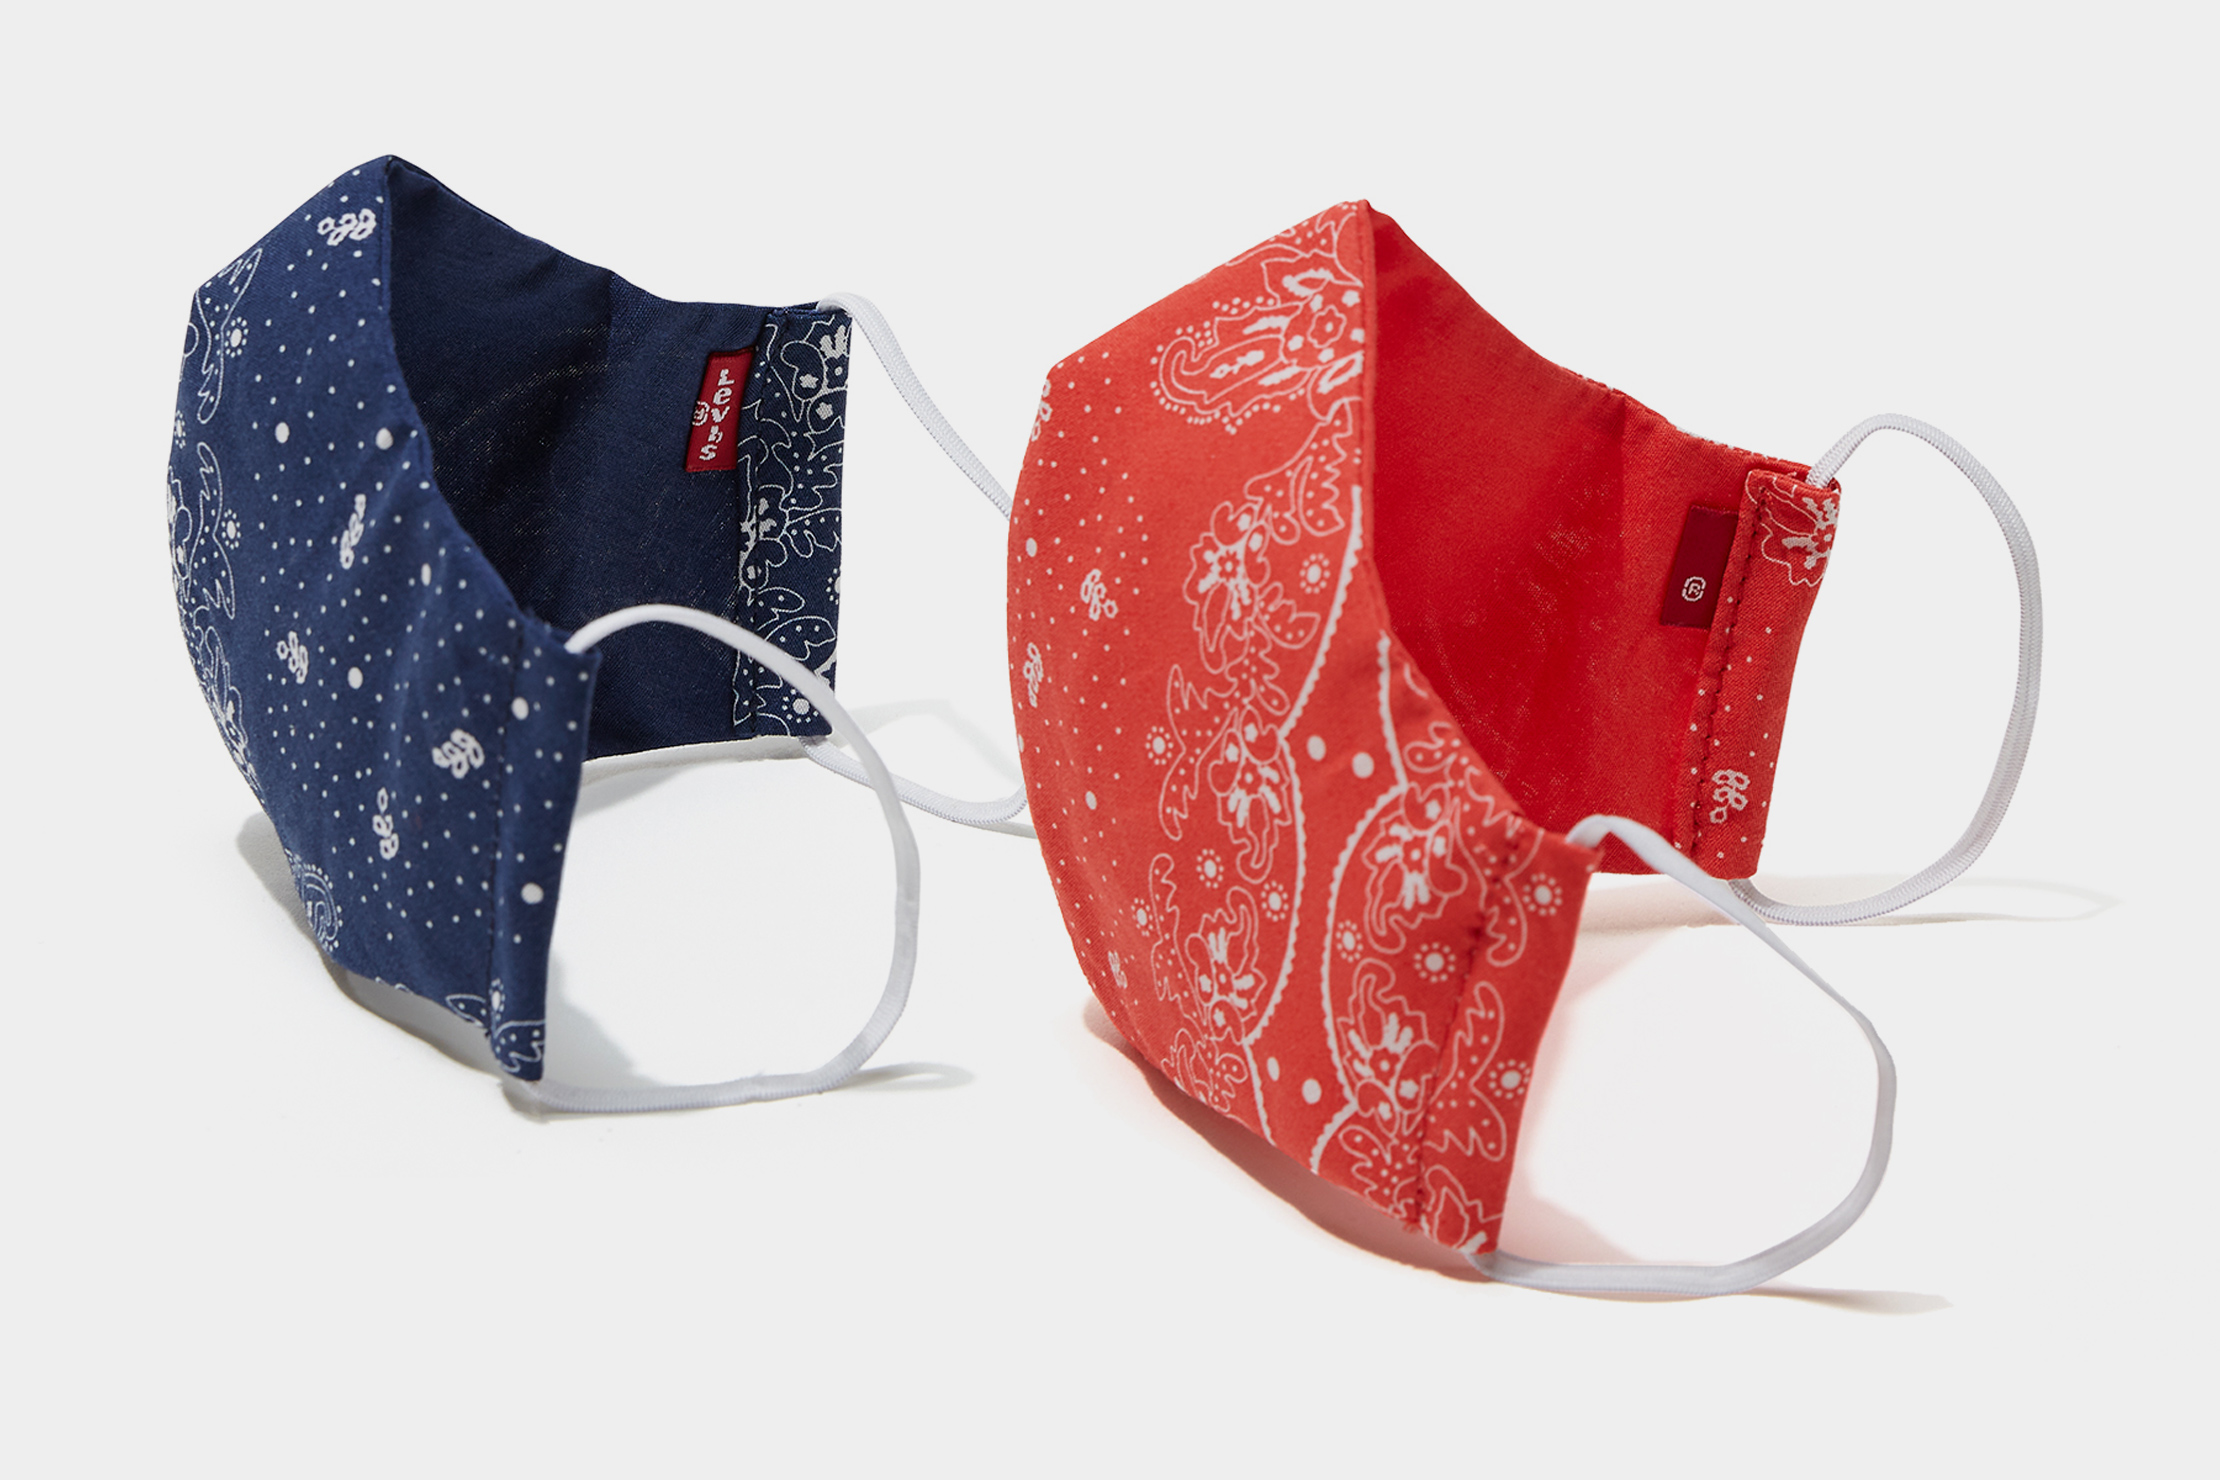 Levi's Face Masks